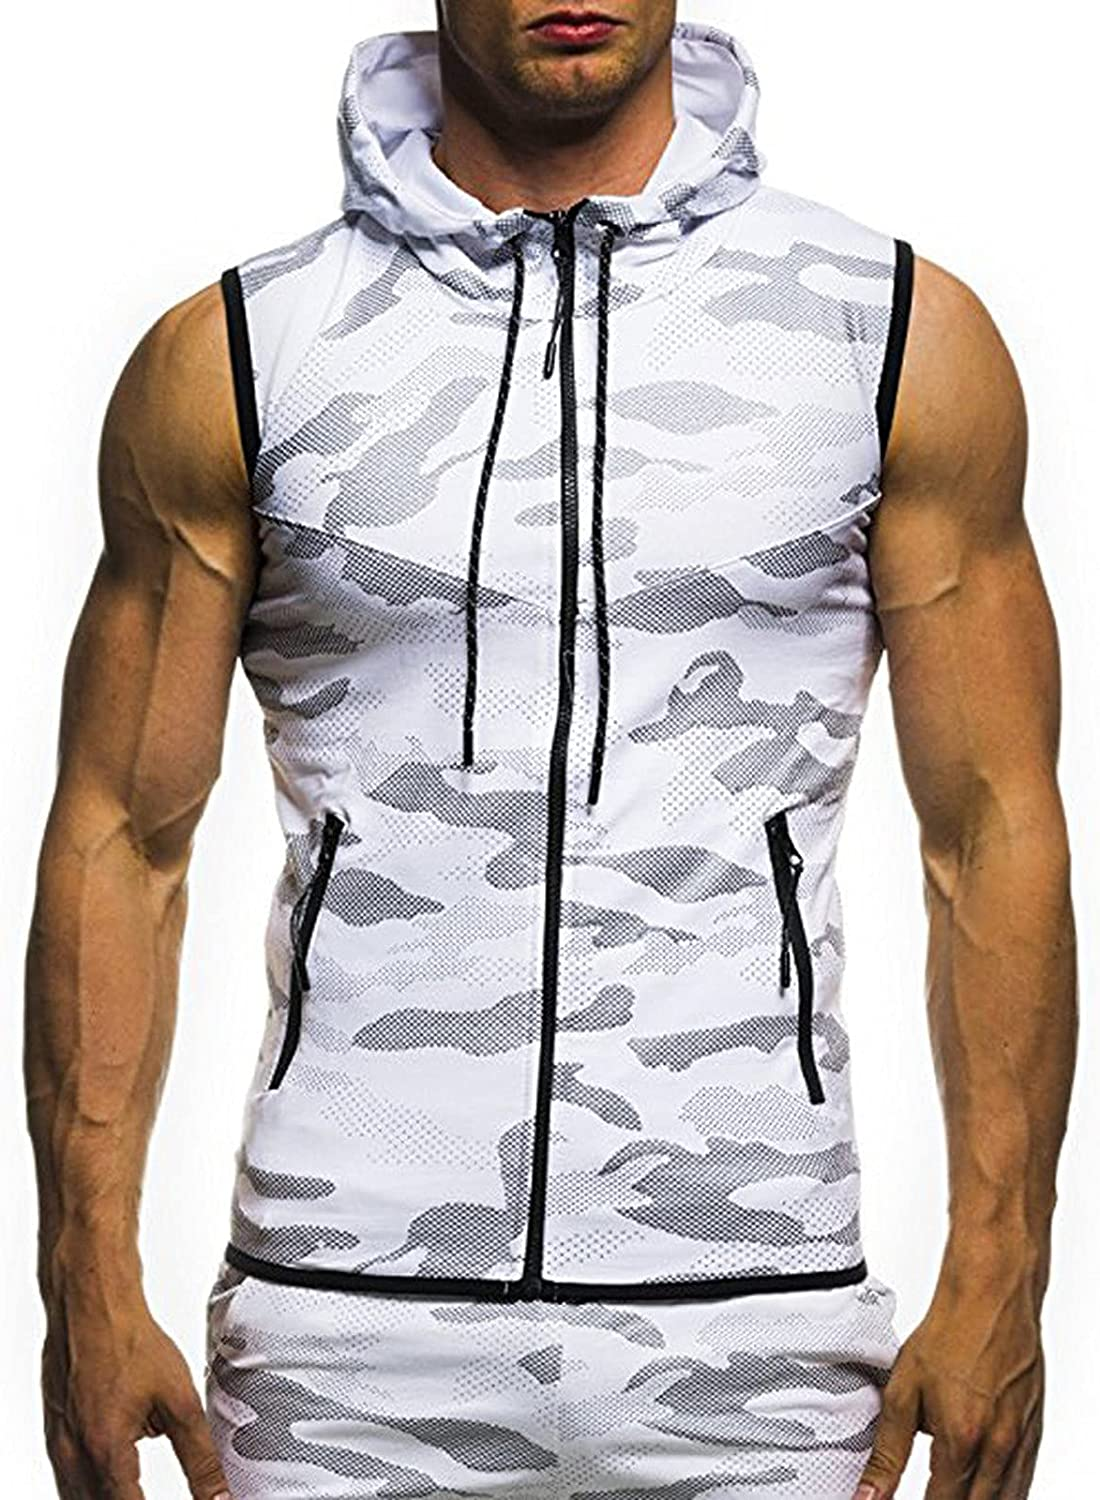 Clearance Mens Muscle Hoodies Vest Jacket Zip Up Slim Fit Pockets Tank Tops Sleeveless Bodybuilding Activewear Shirts